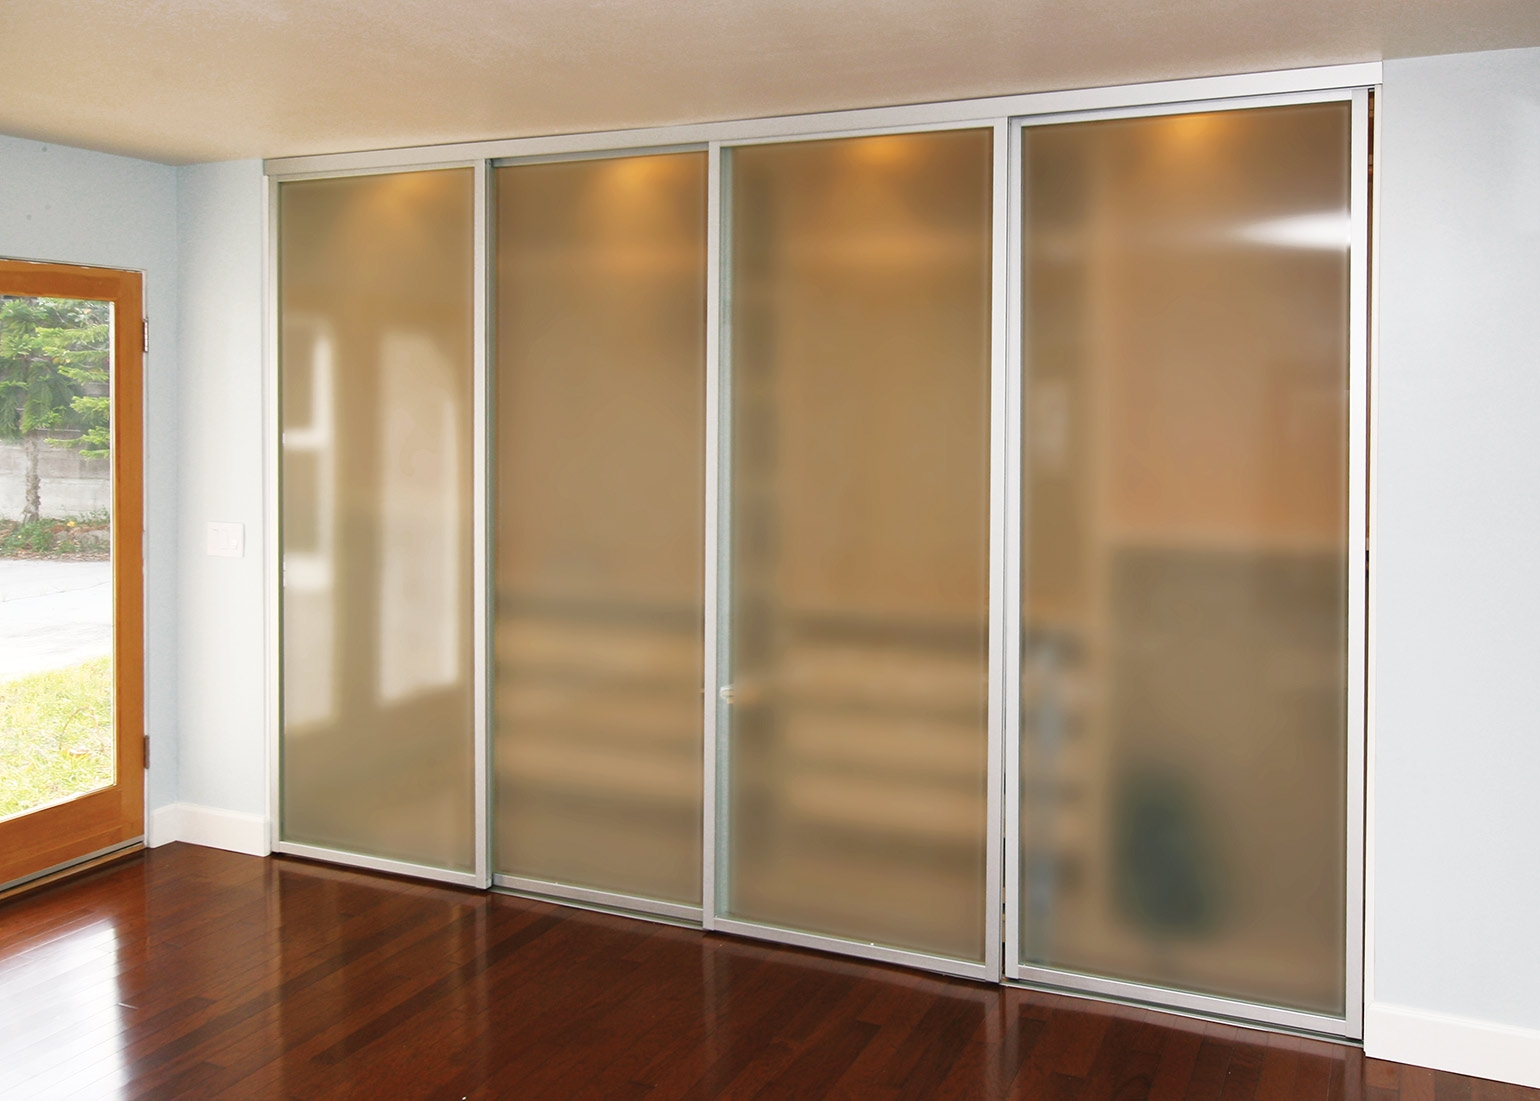 Permalink to Sliding Closet Doors Frosted Glass